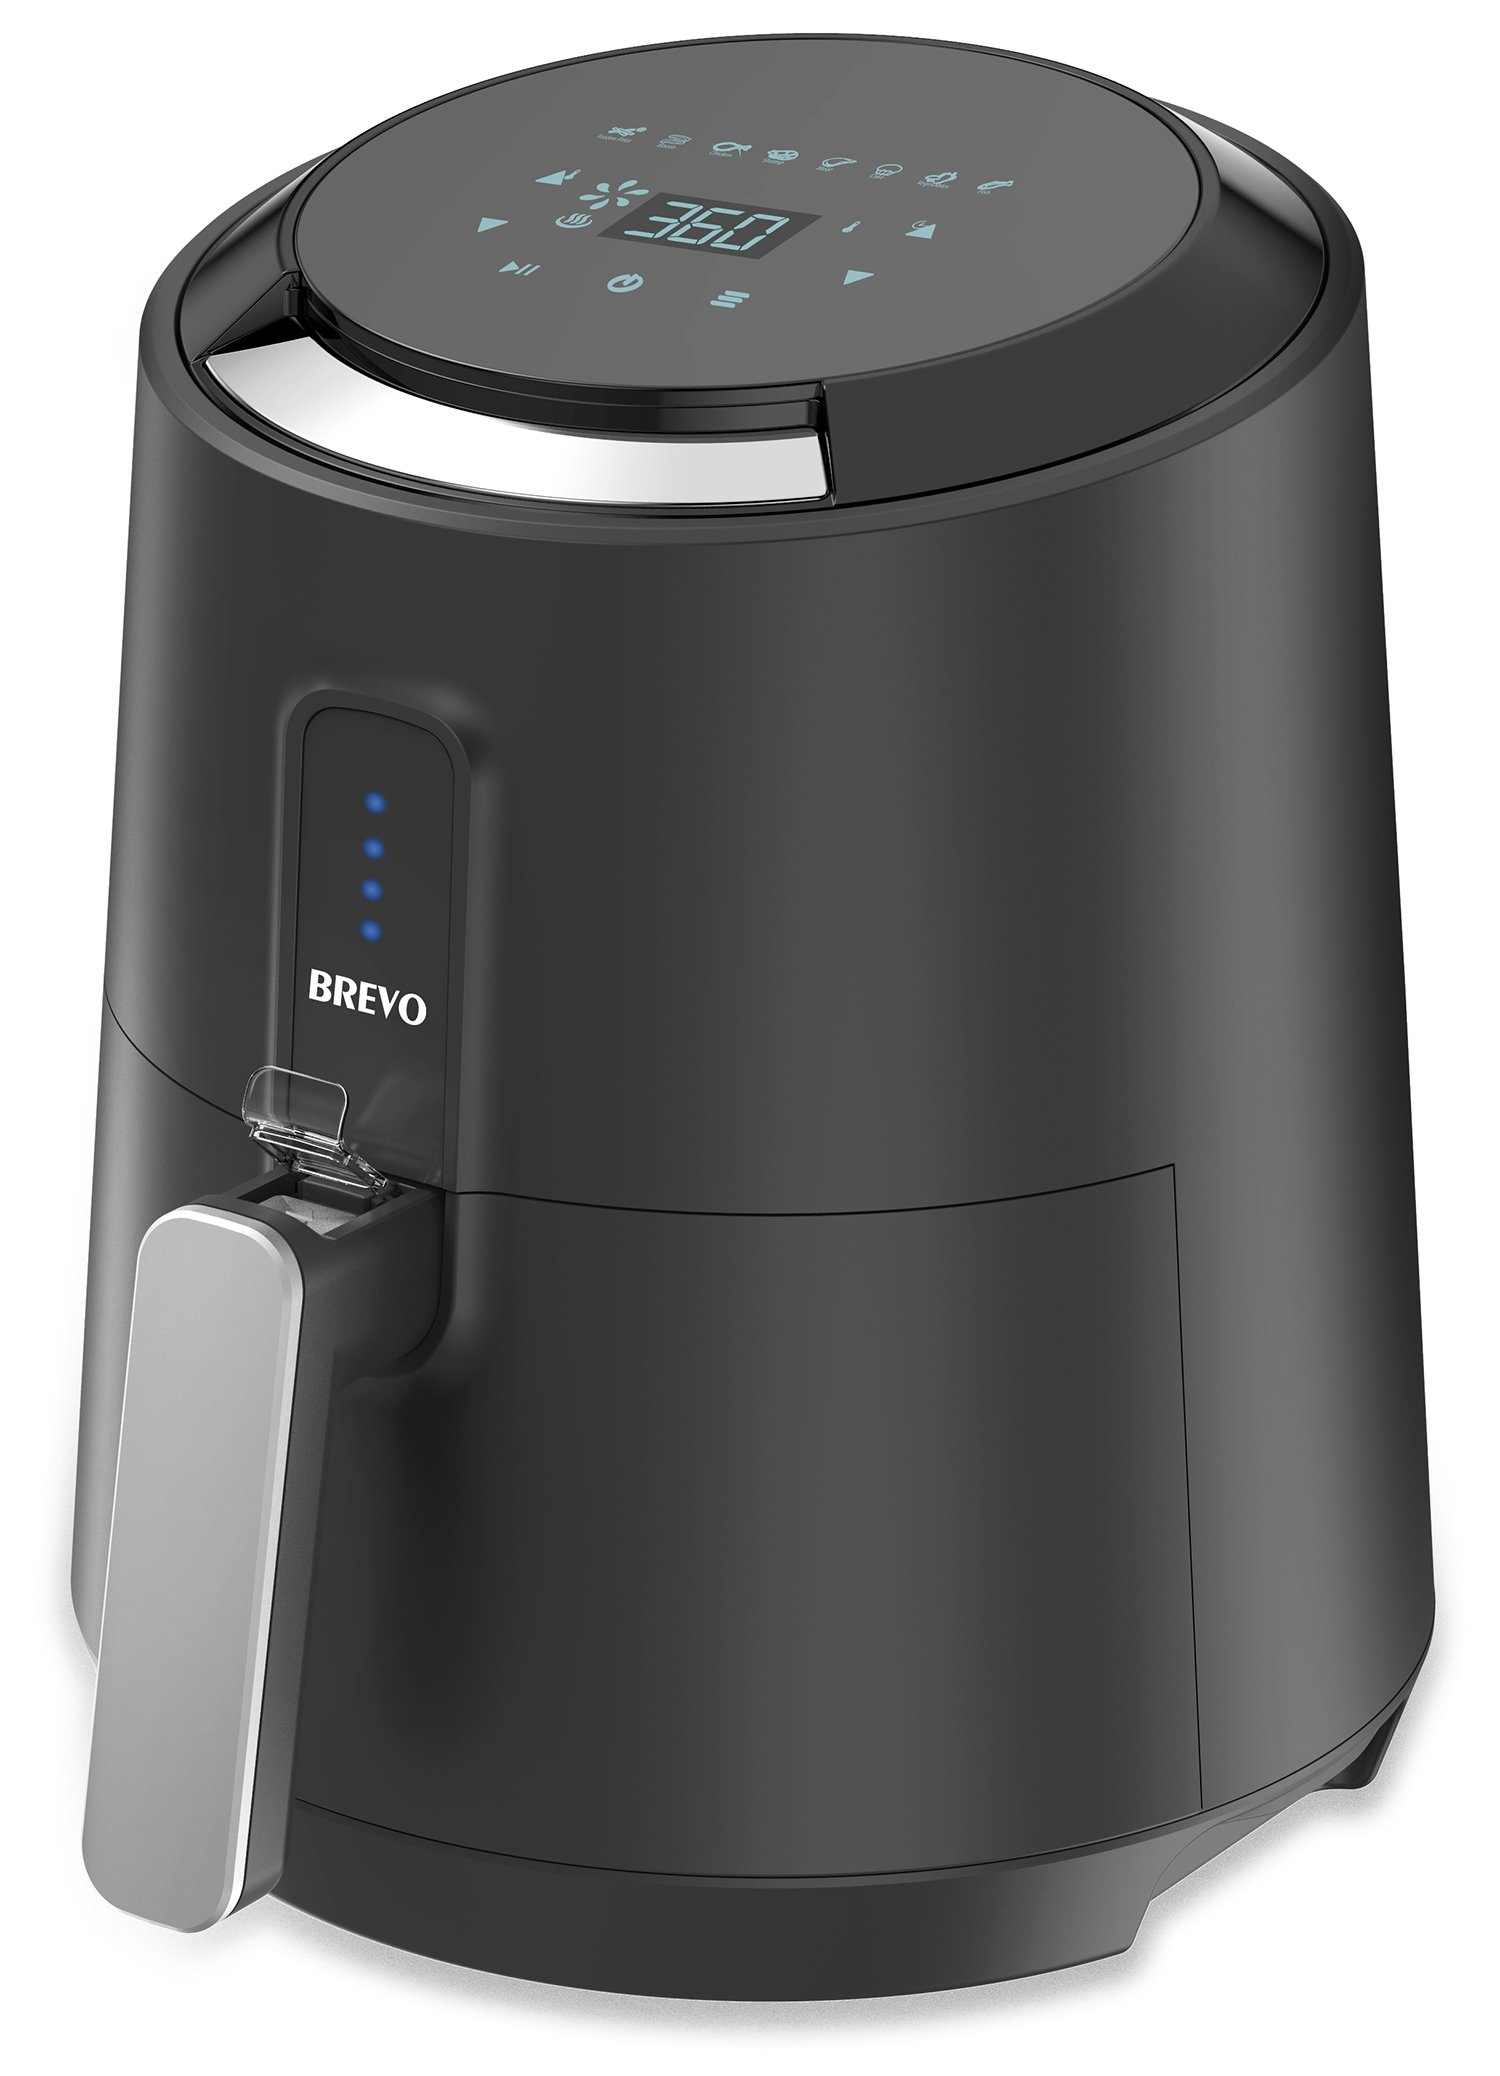 BREVO Digital Automatic Air Fryer Oil-Free Instant Fast Hot Air Frying with 8 Cook Presets Programmable Touch Control 1400W 2.7Qt